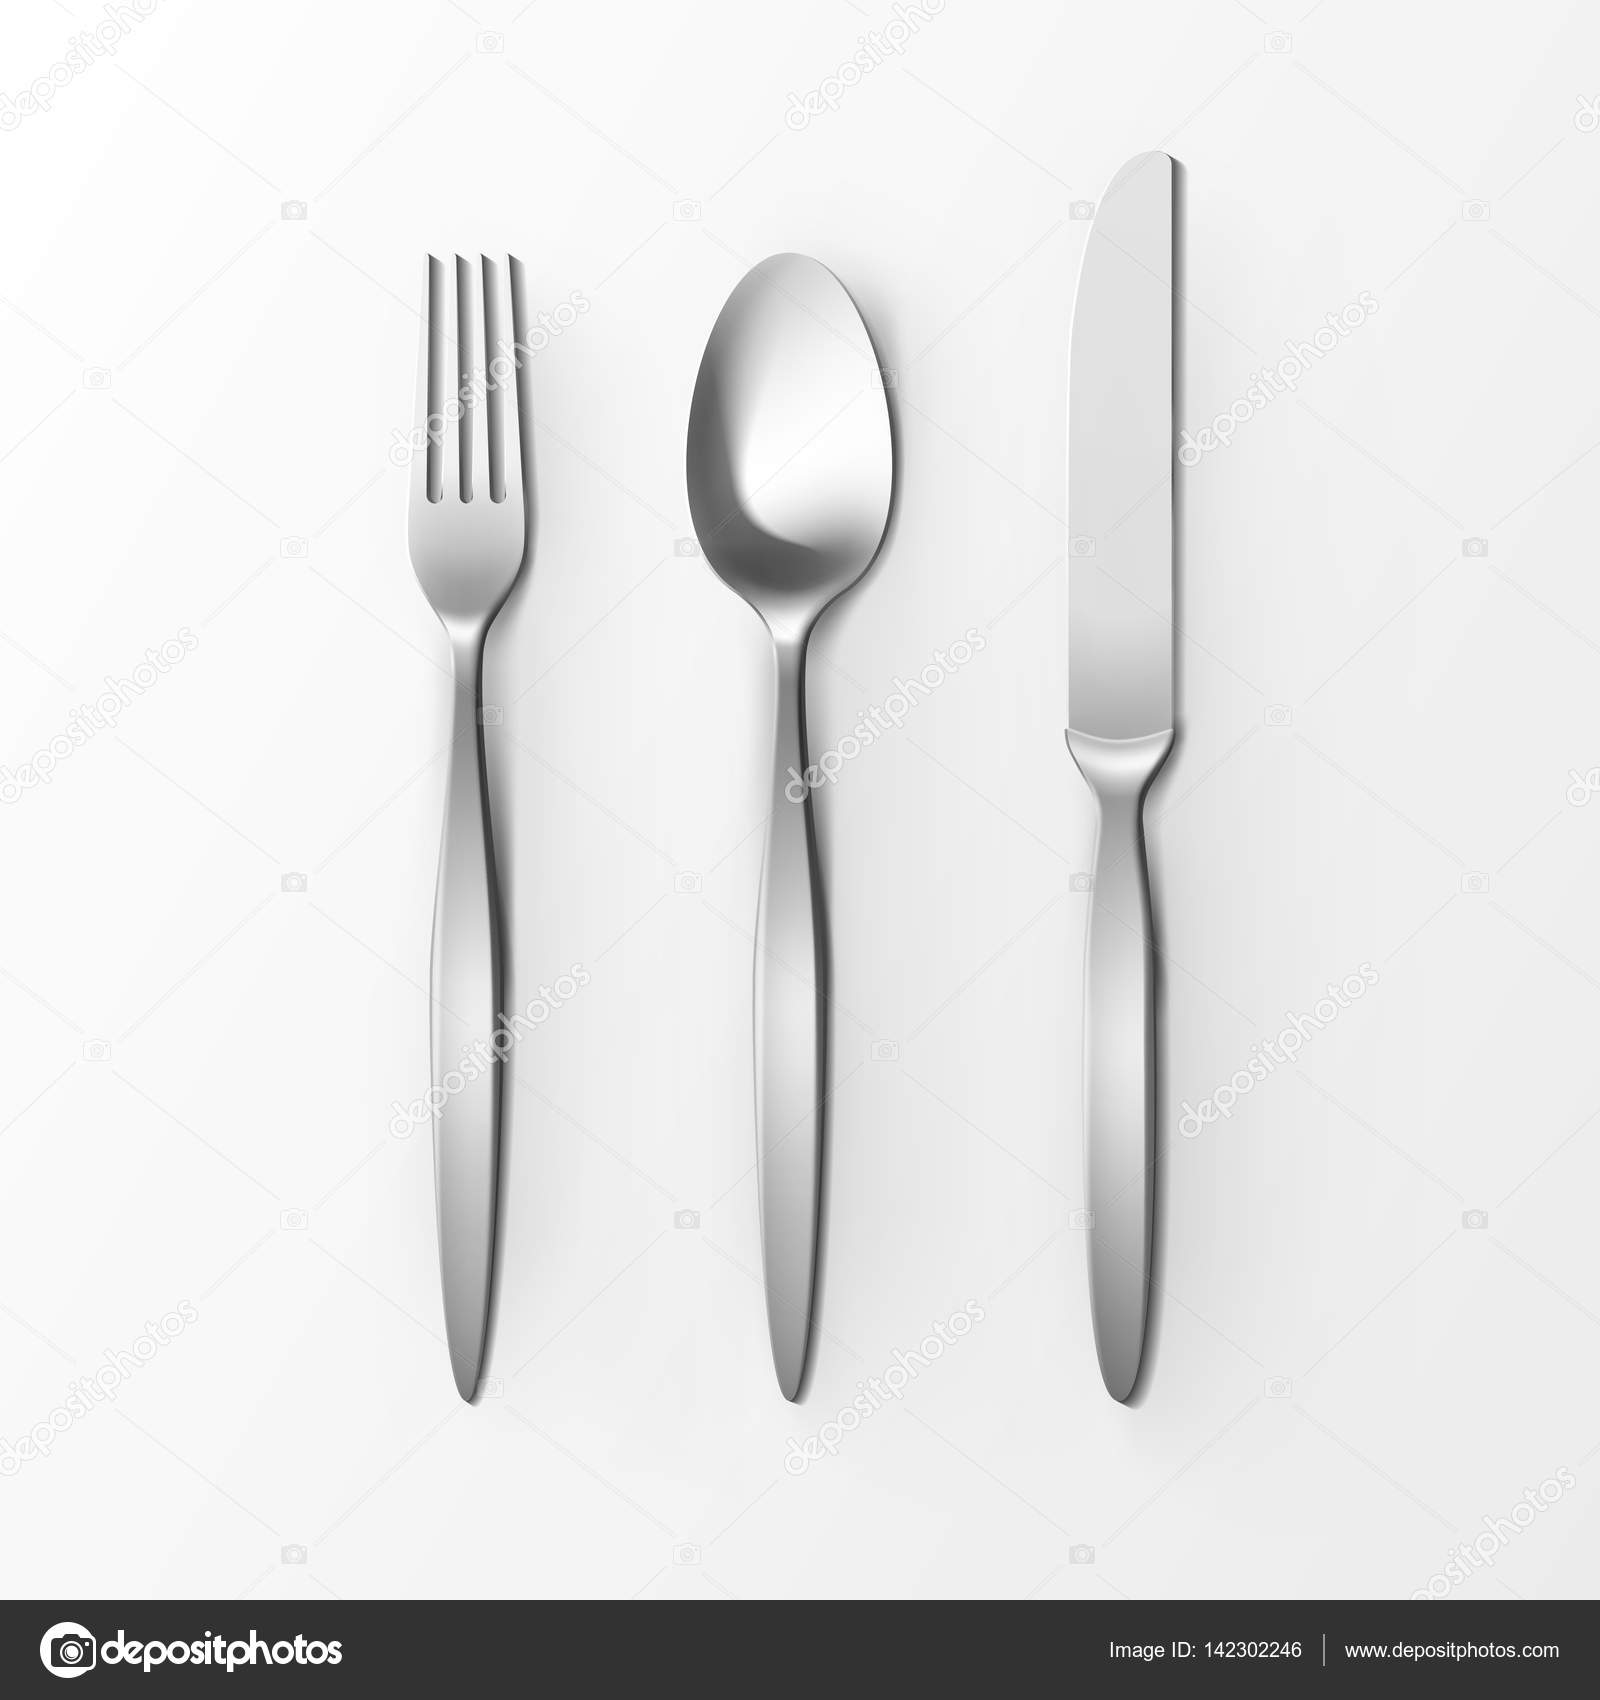 Cutlery Set of Silver Fork Spoon and Knife Top View Isolated on ...